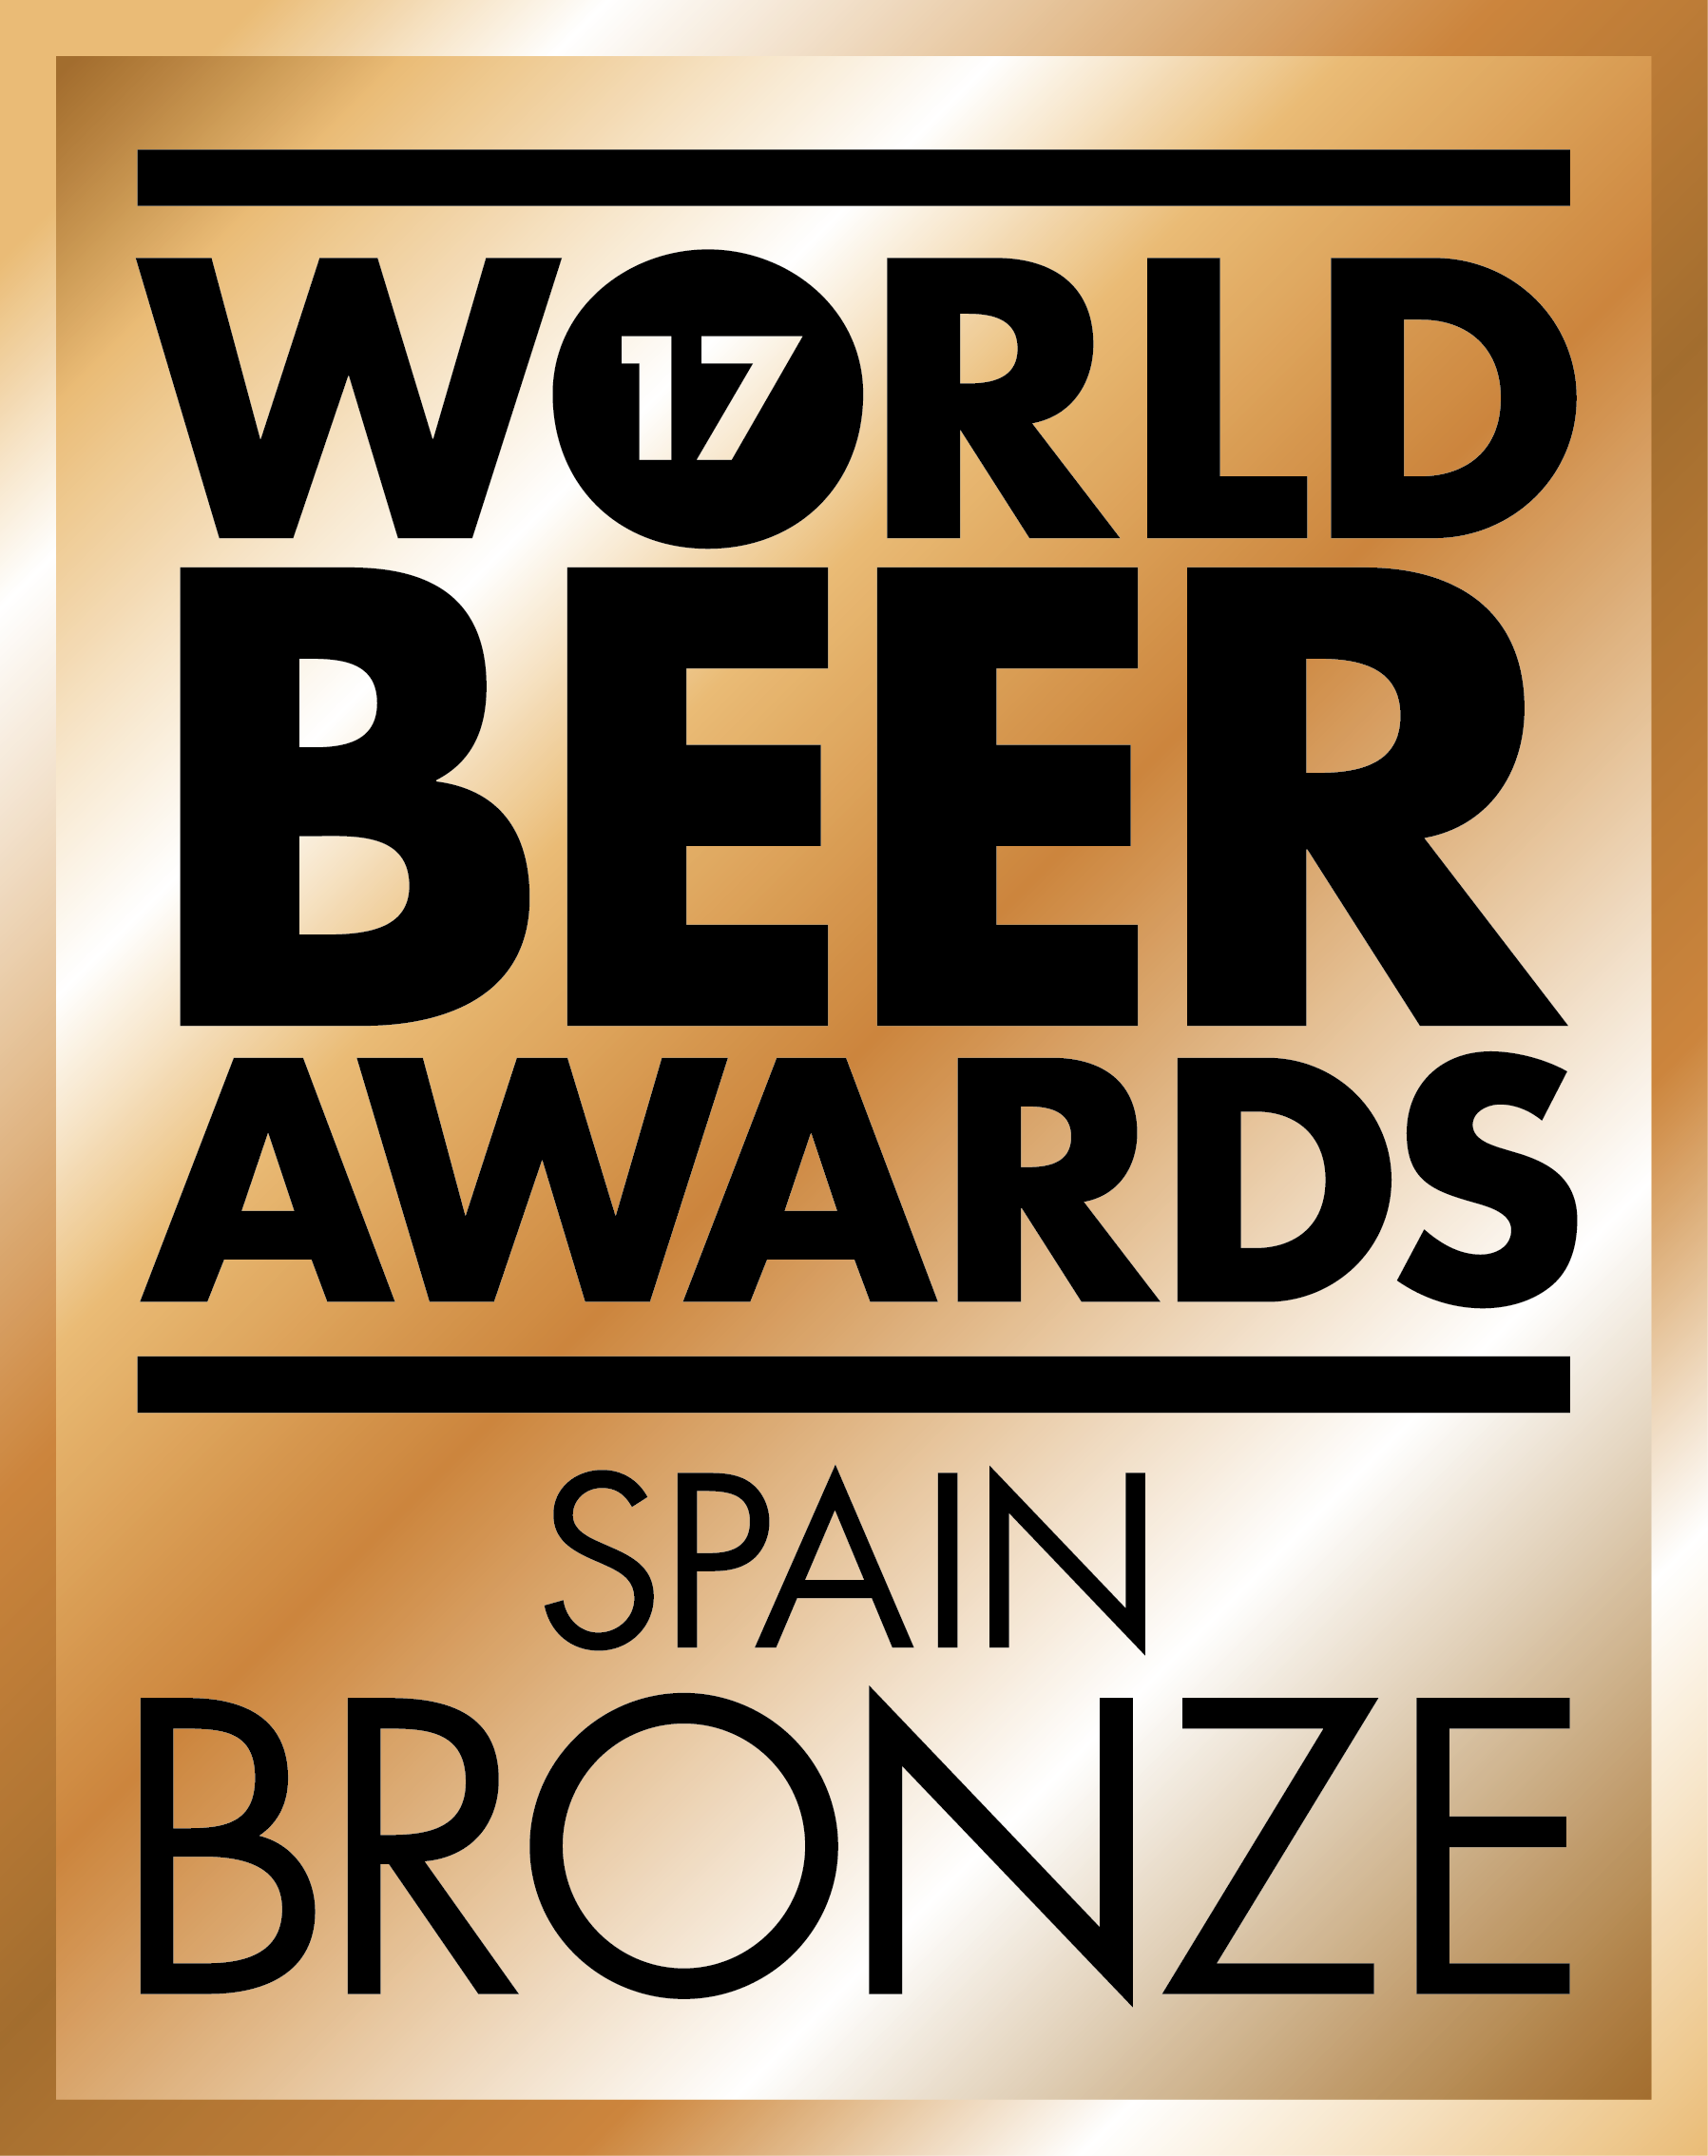 World Beer Awards, Bronce